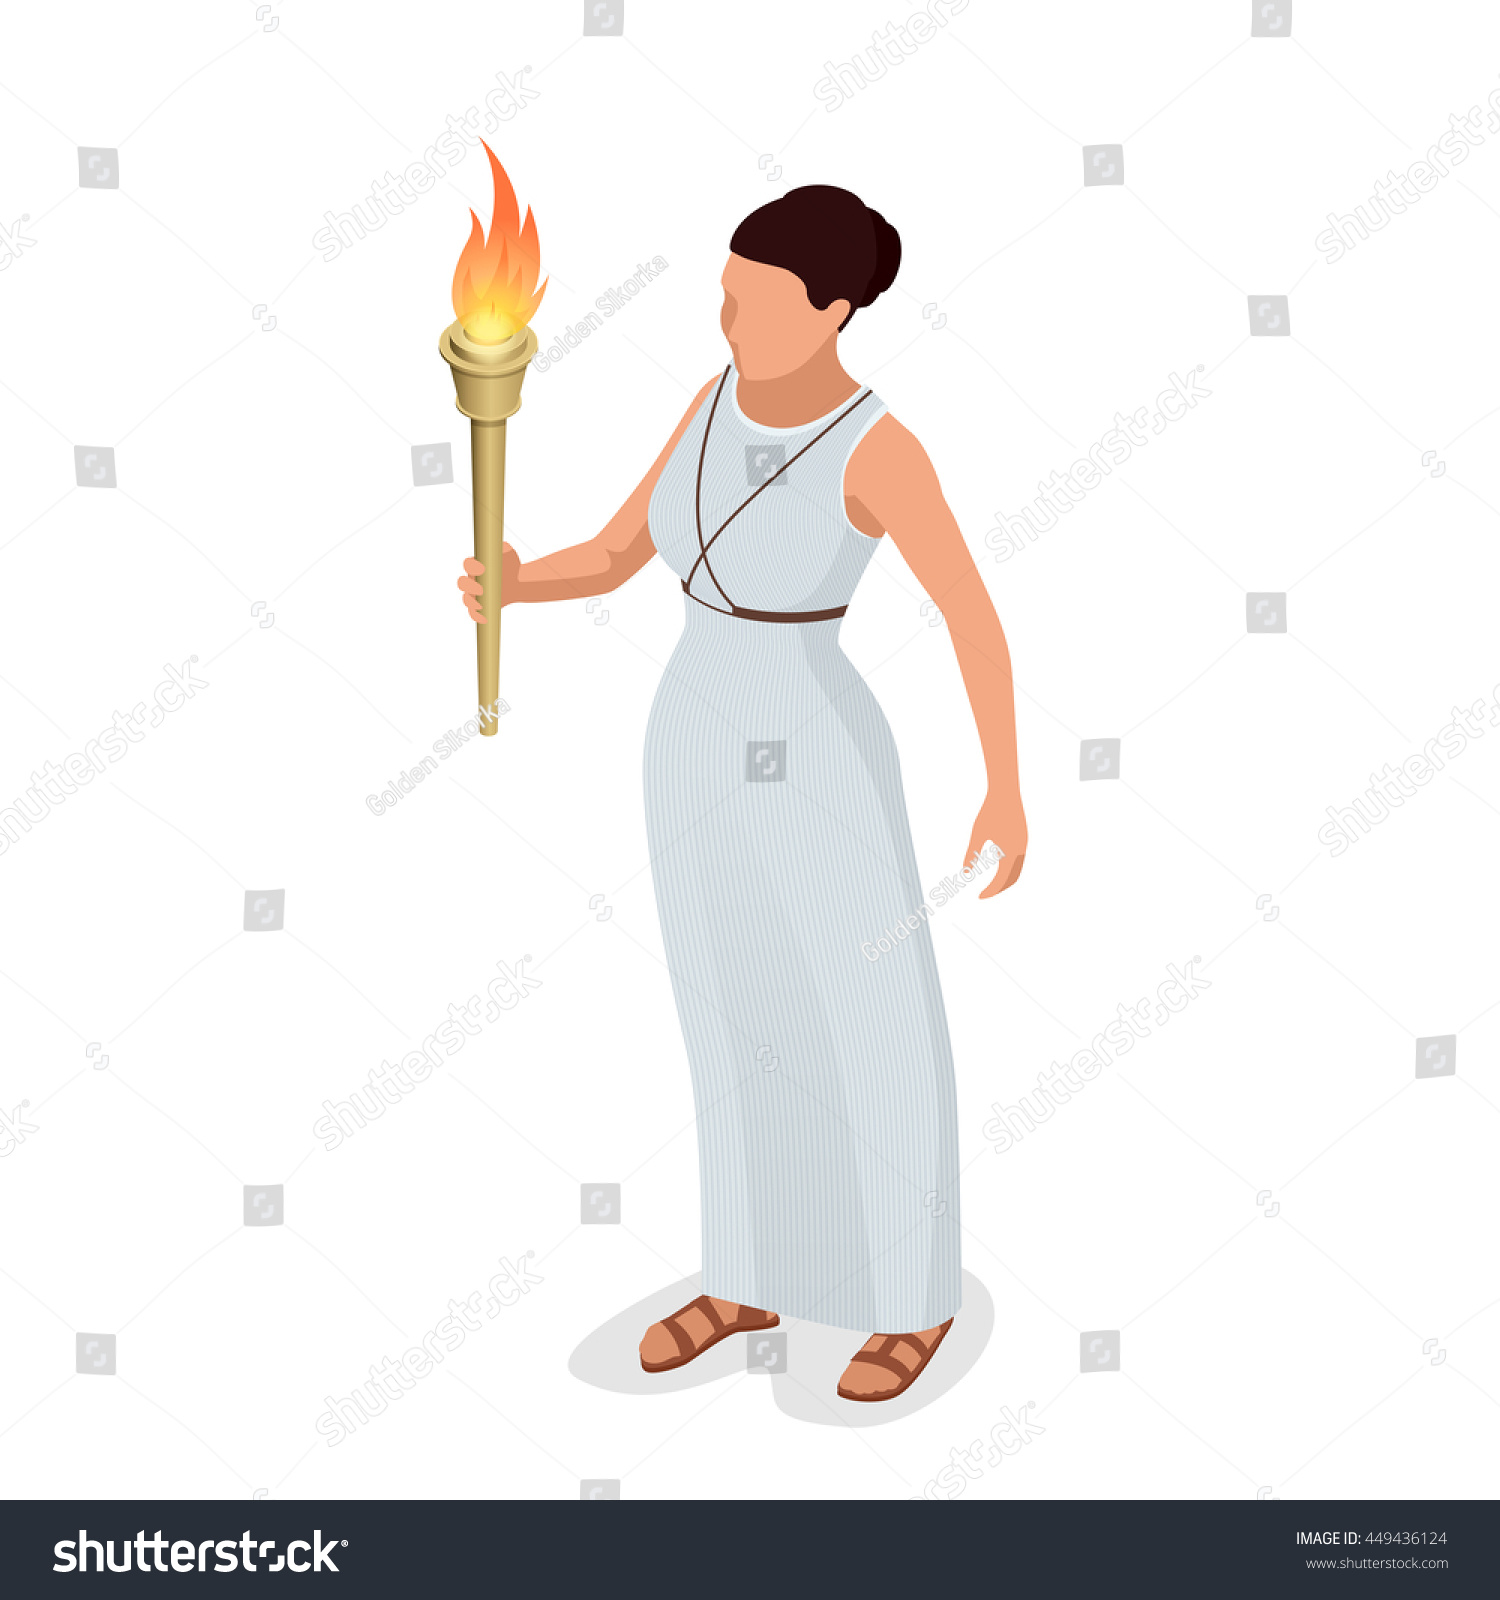 greek woman torch her hand woman stock illustration 449436124